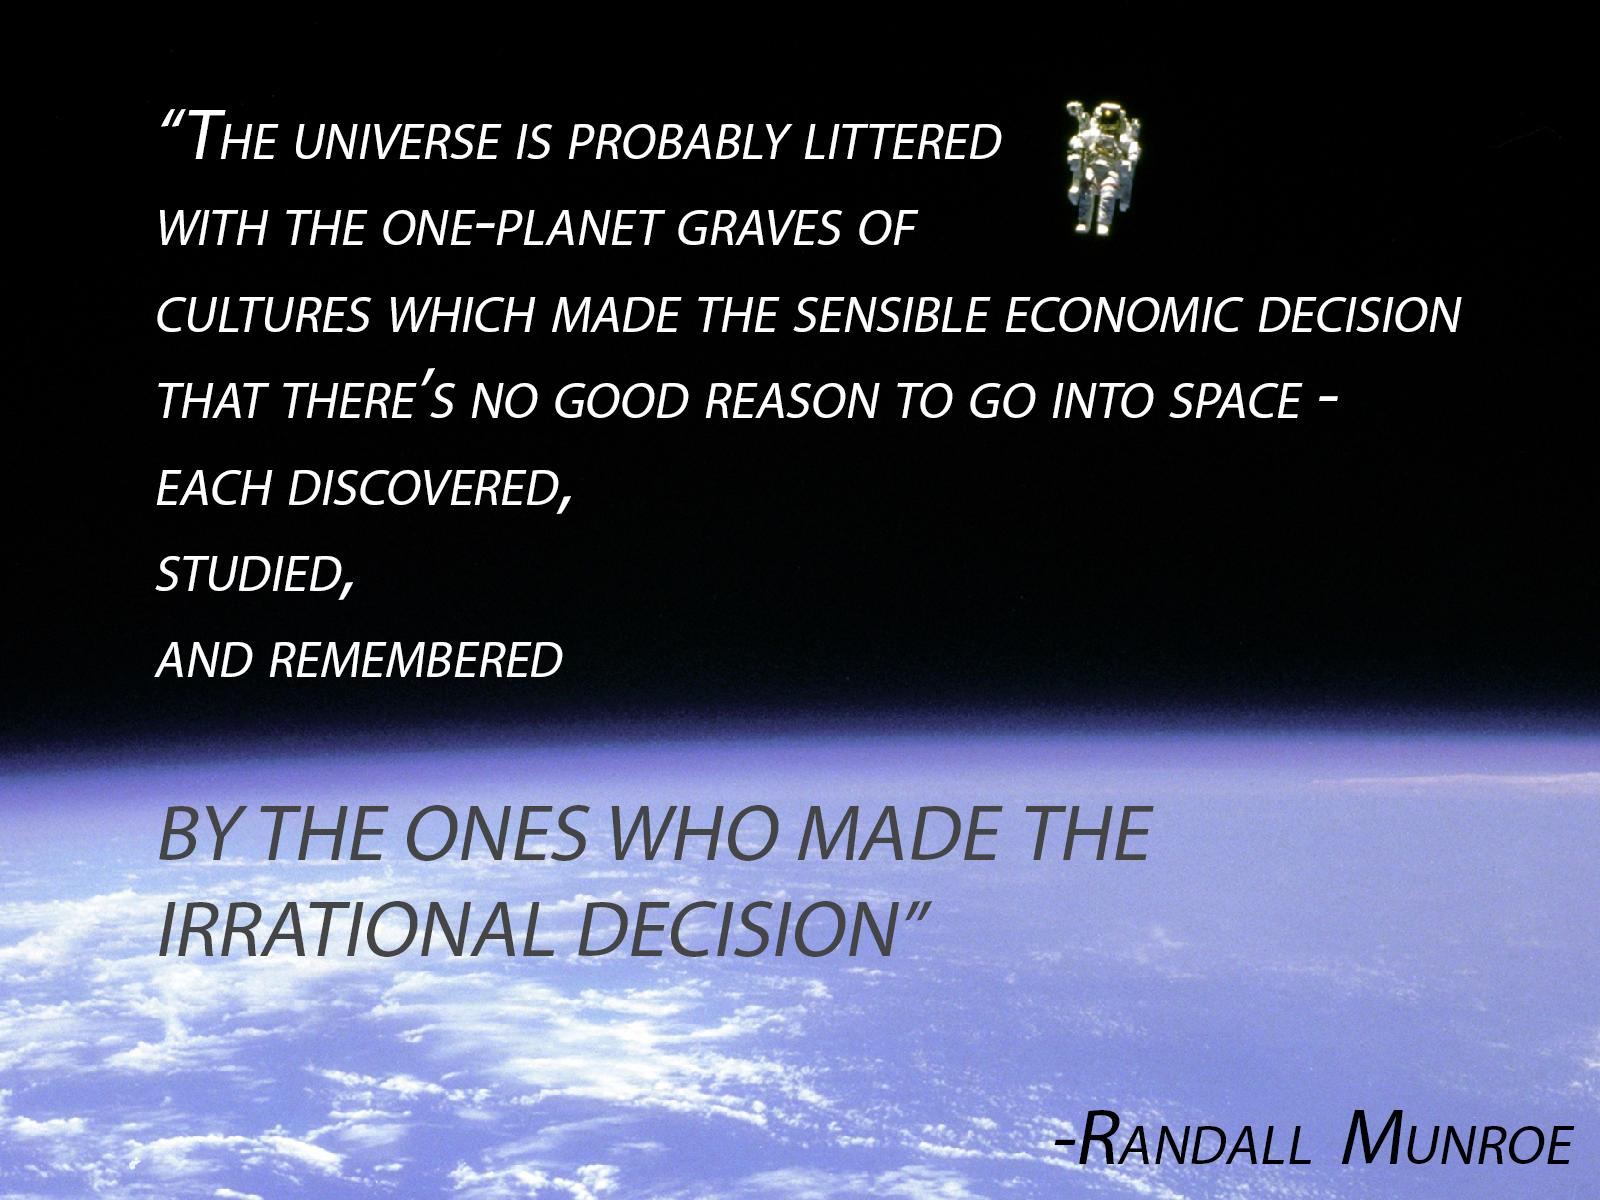 Randall Munroe's quote